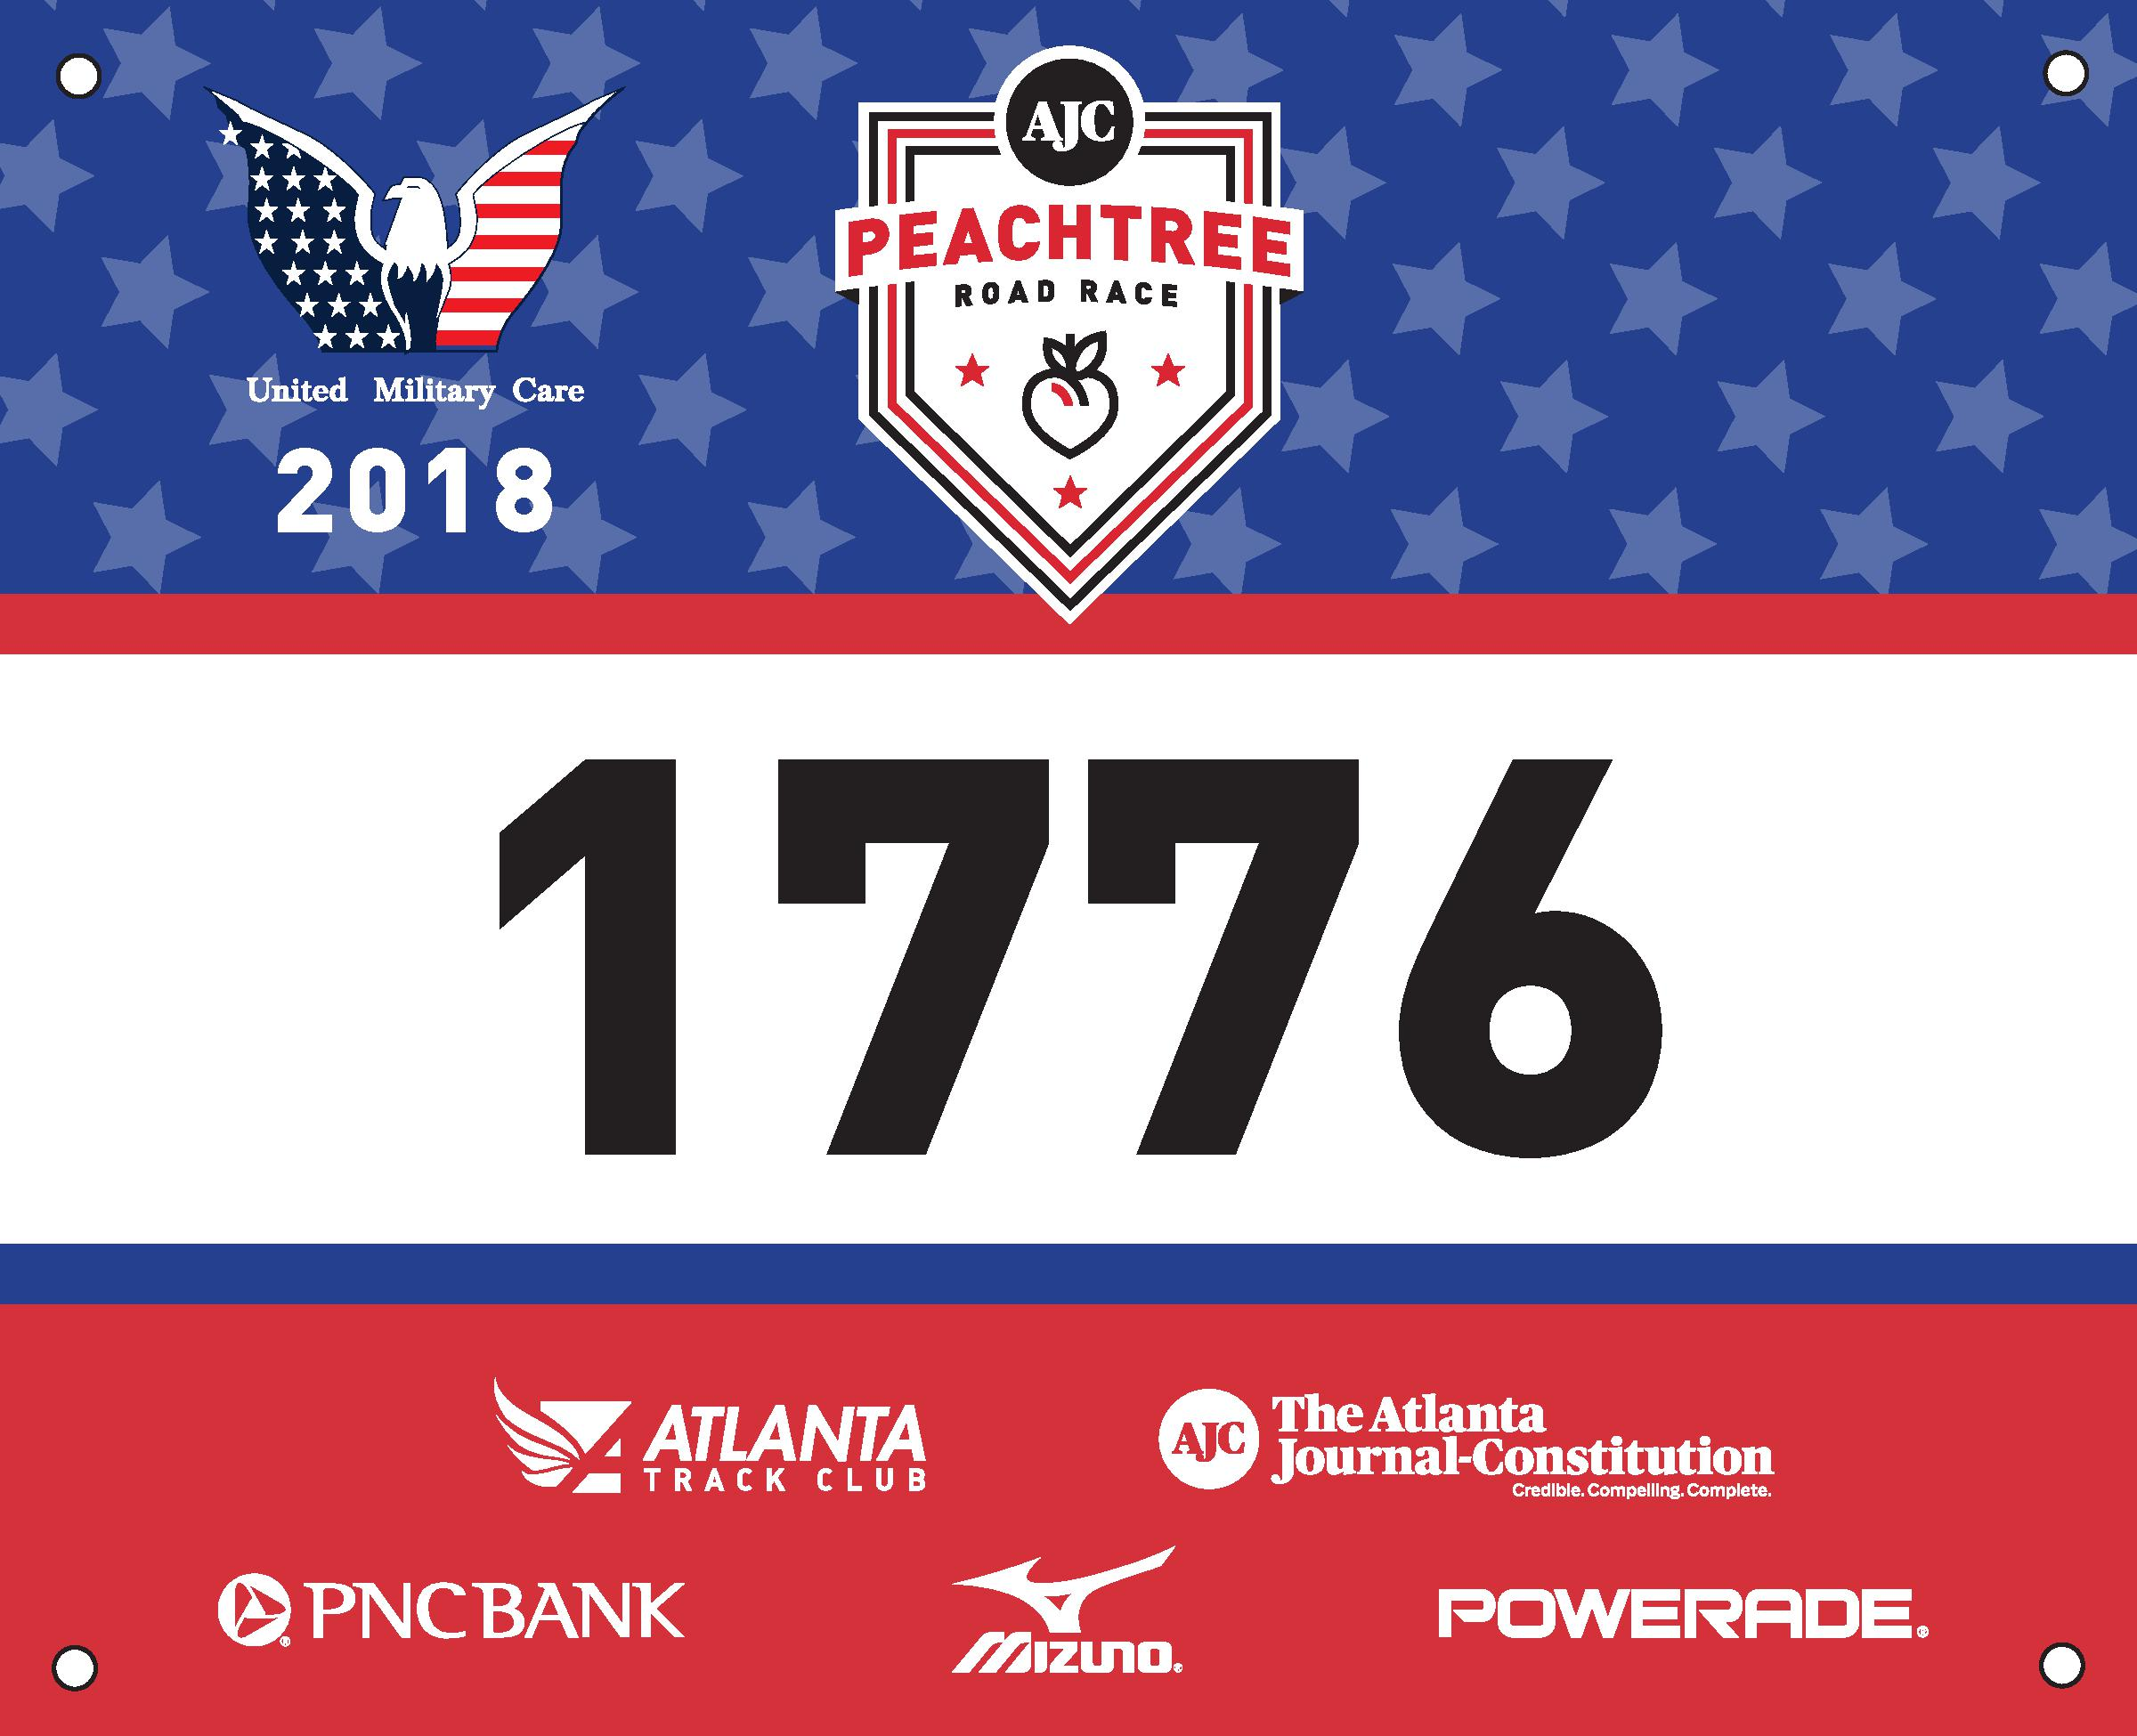 Commemorative Race Number to Honor Military at AJC Peachtree Road Race